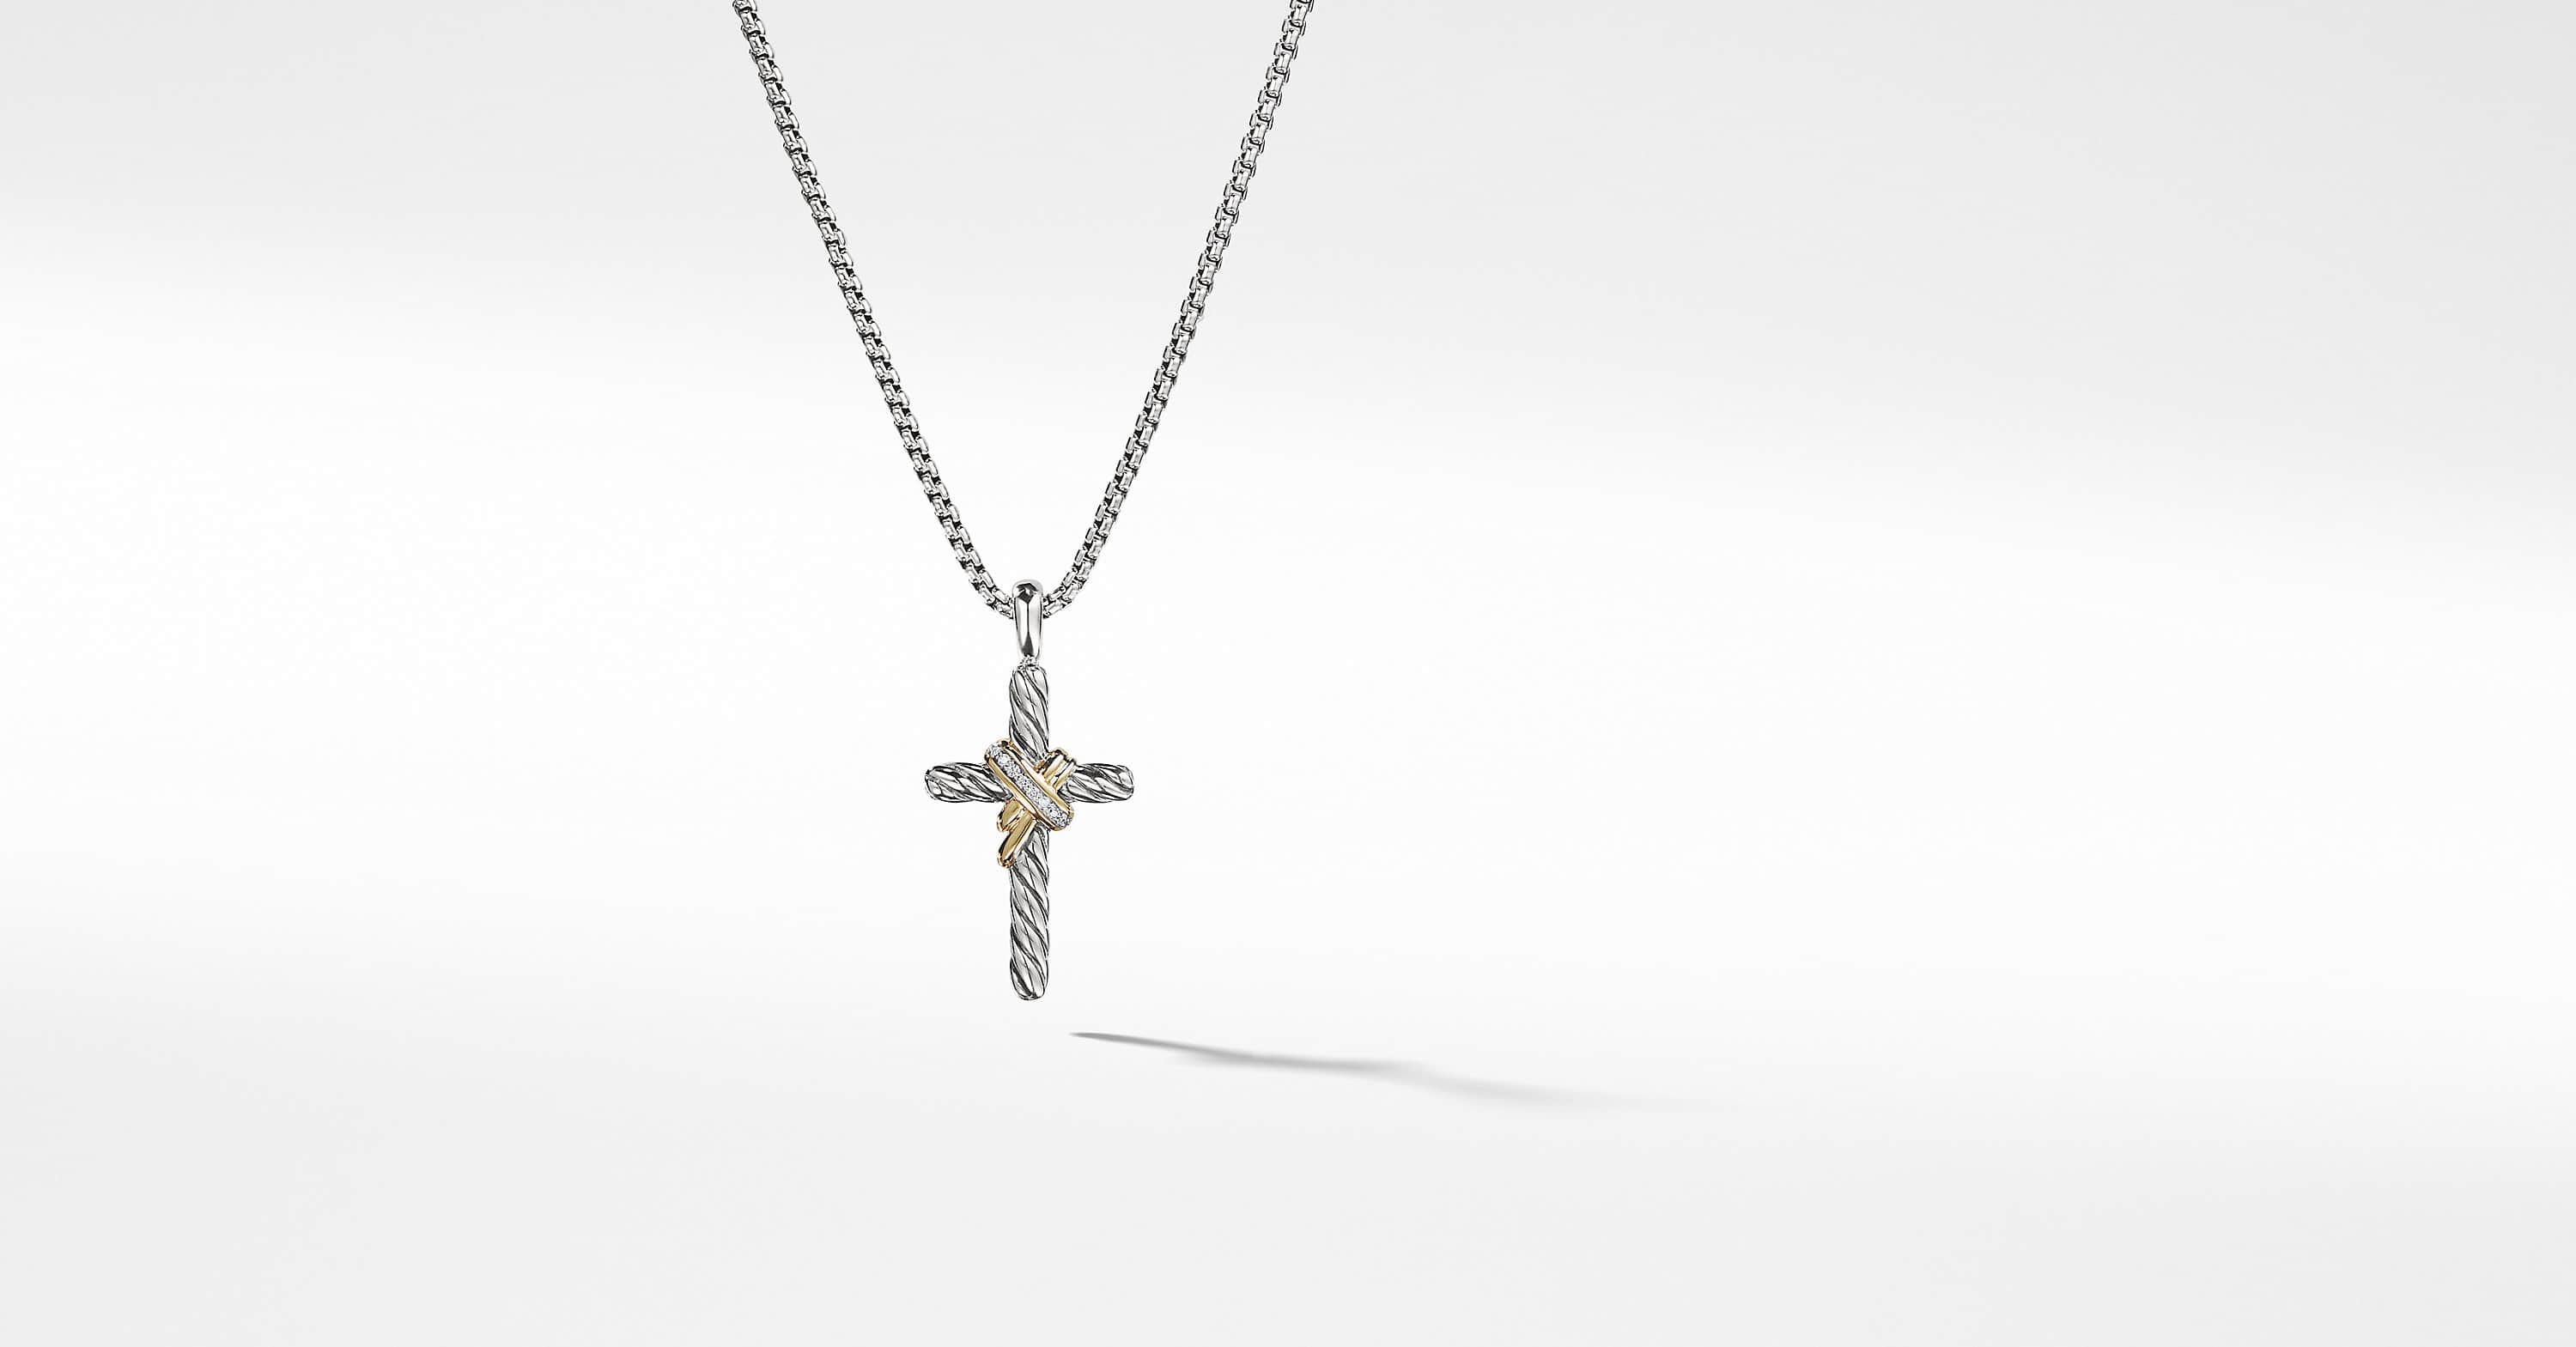 X Cross Necklace with Diamonds and 14K Gold